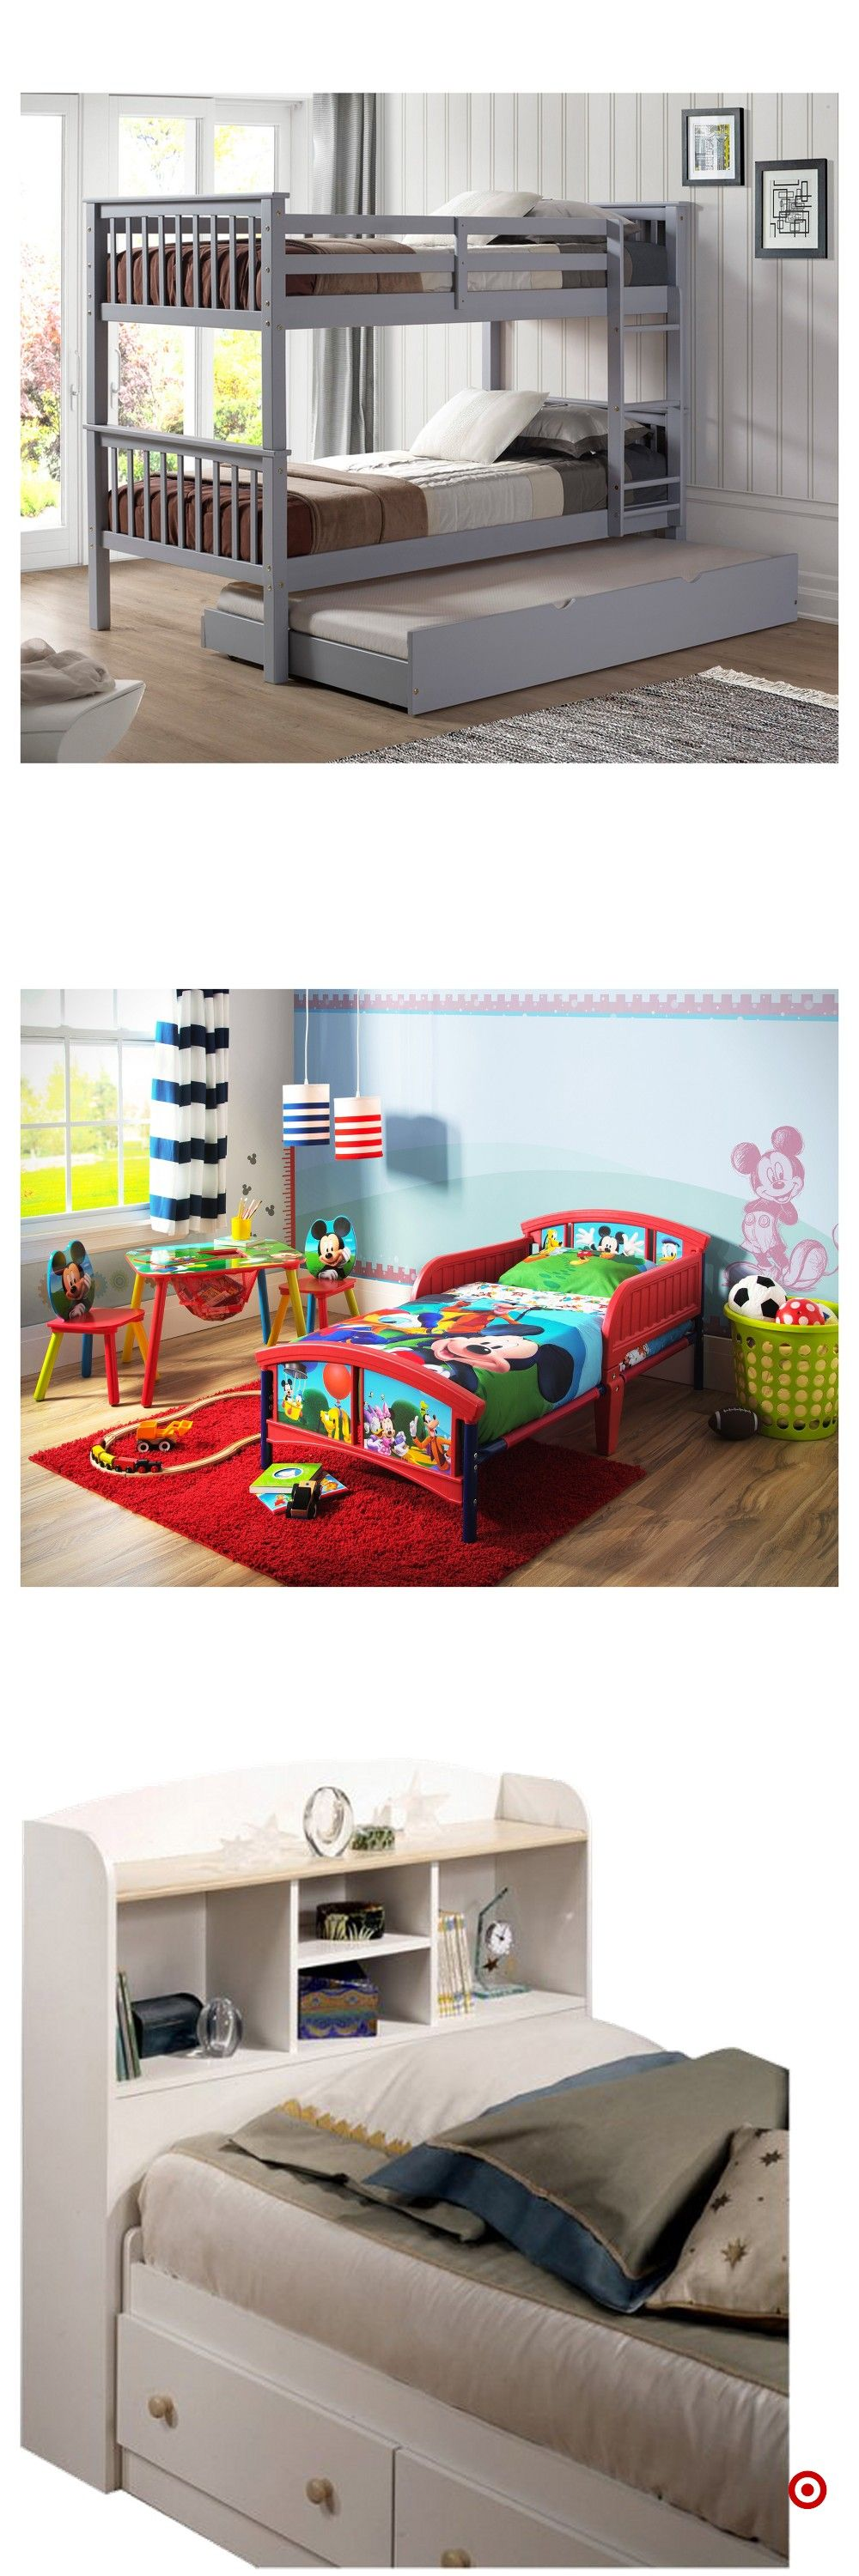 Shop Target For Kids Bed You Will Love At Great Low Prices Free Shipping On Orders Of 35 Or Free Same Day Pick Up In Store With Images Bunk Beds Kid Beds Bunk